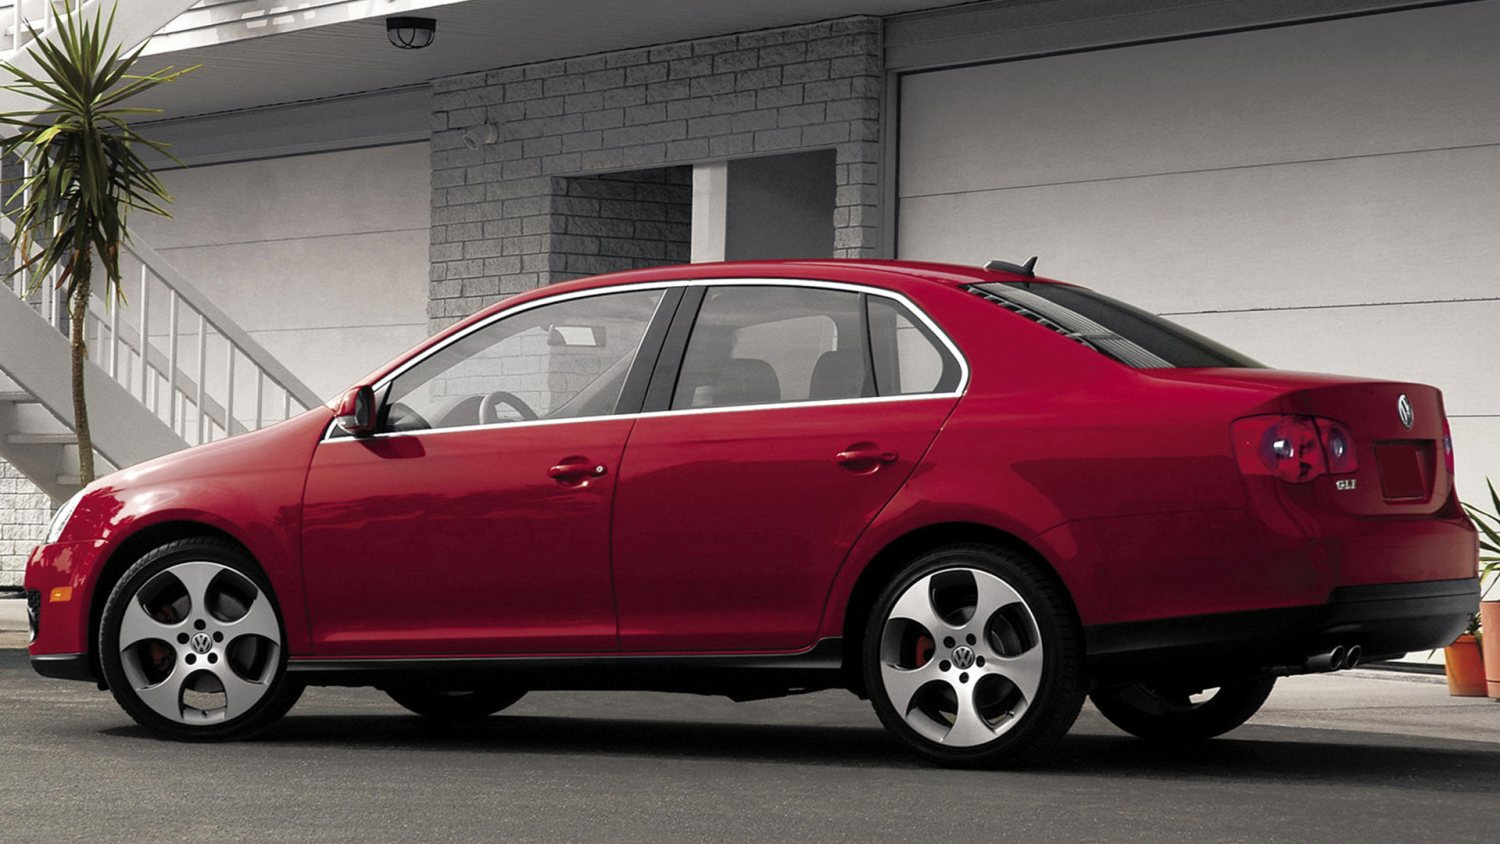 2006 Volkswagen Jetta Gli >> Jetta Gli The Fast Volkswagen European Buyers Forgot About